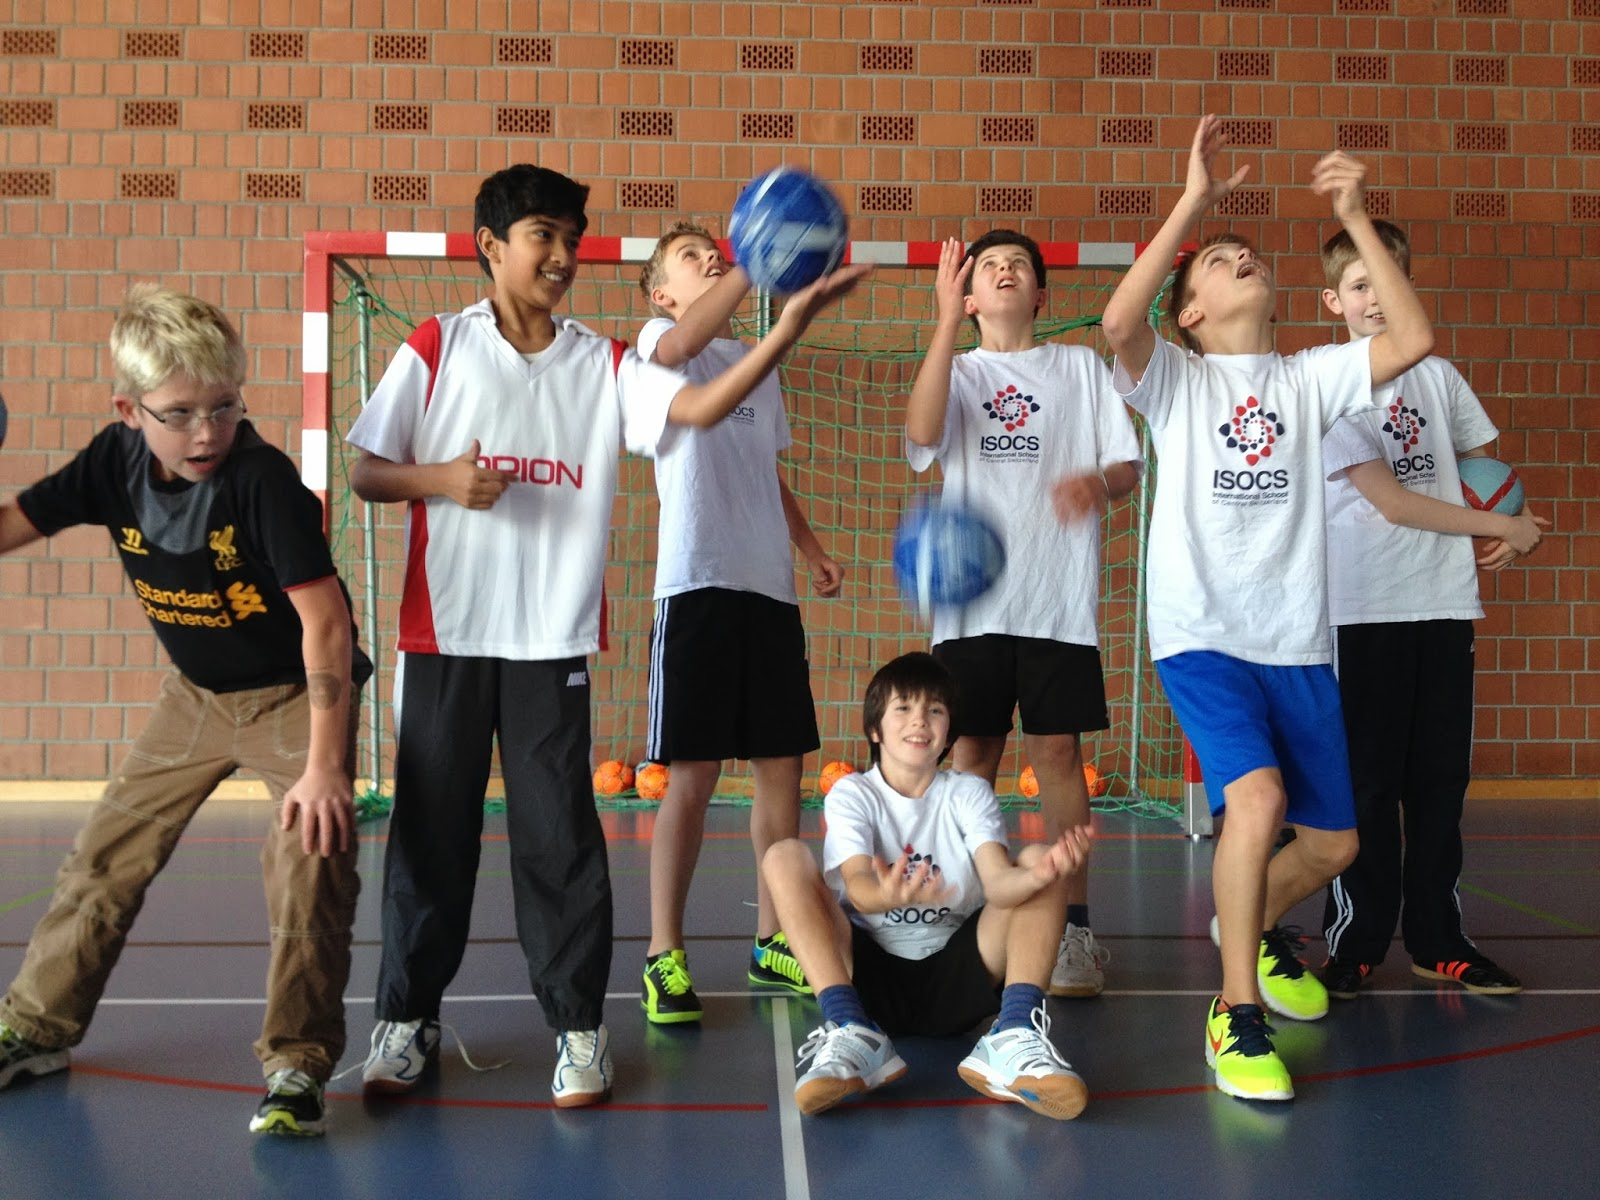 Handball Rules For School pe Middle School 6 Rules of